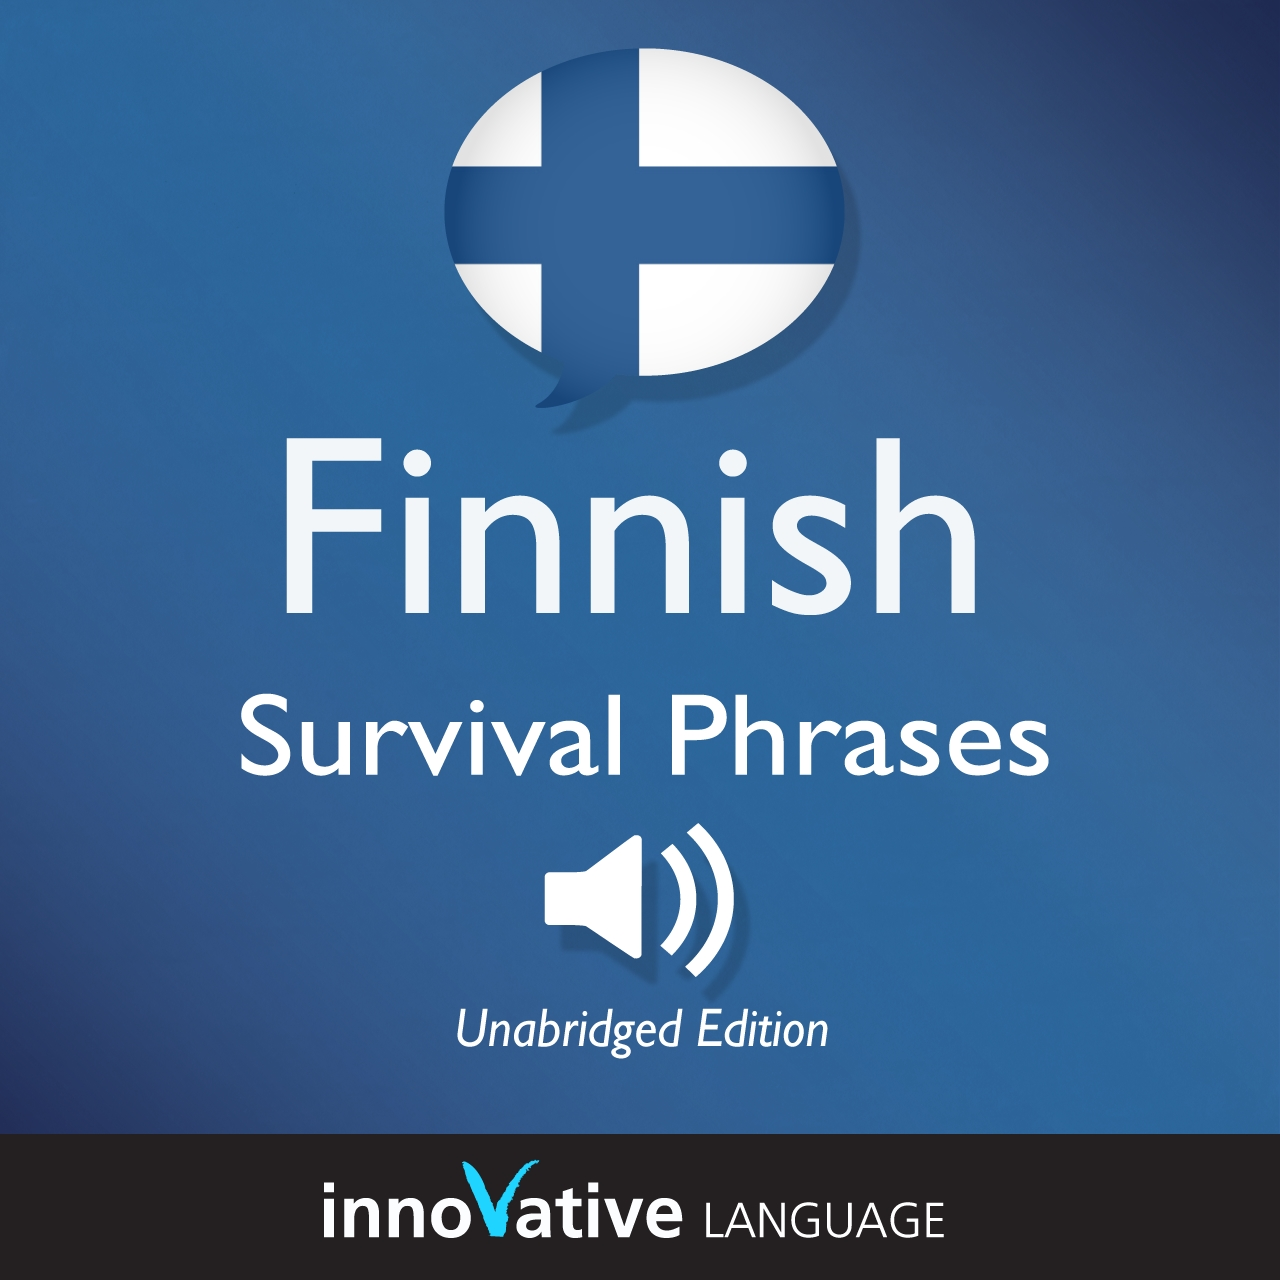 Audiobook Finnish - Survival Phrases Finnish